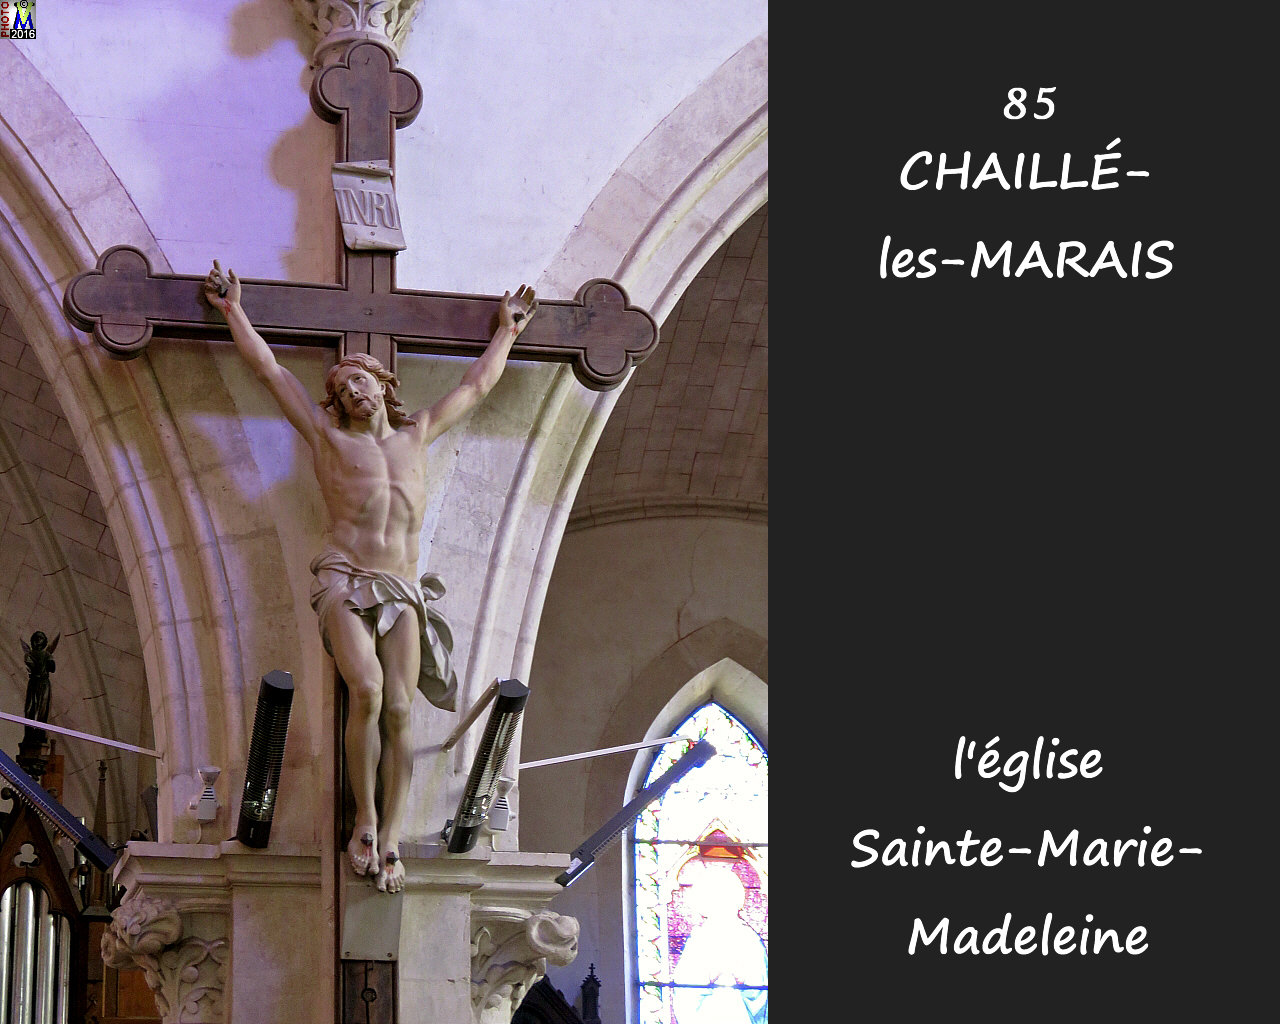 85CHAILLE-MARAIS_eglise_1250.jpg